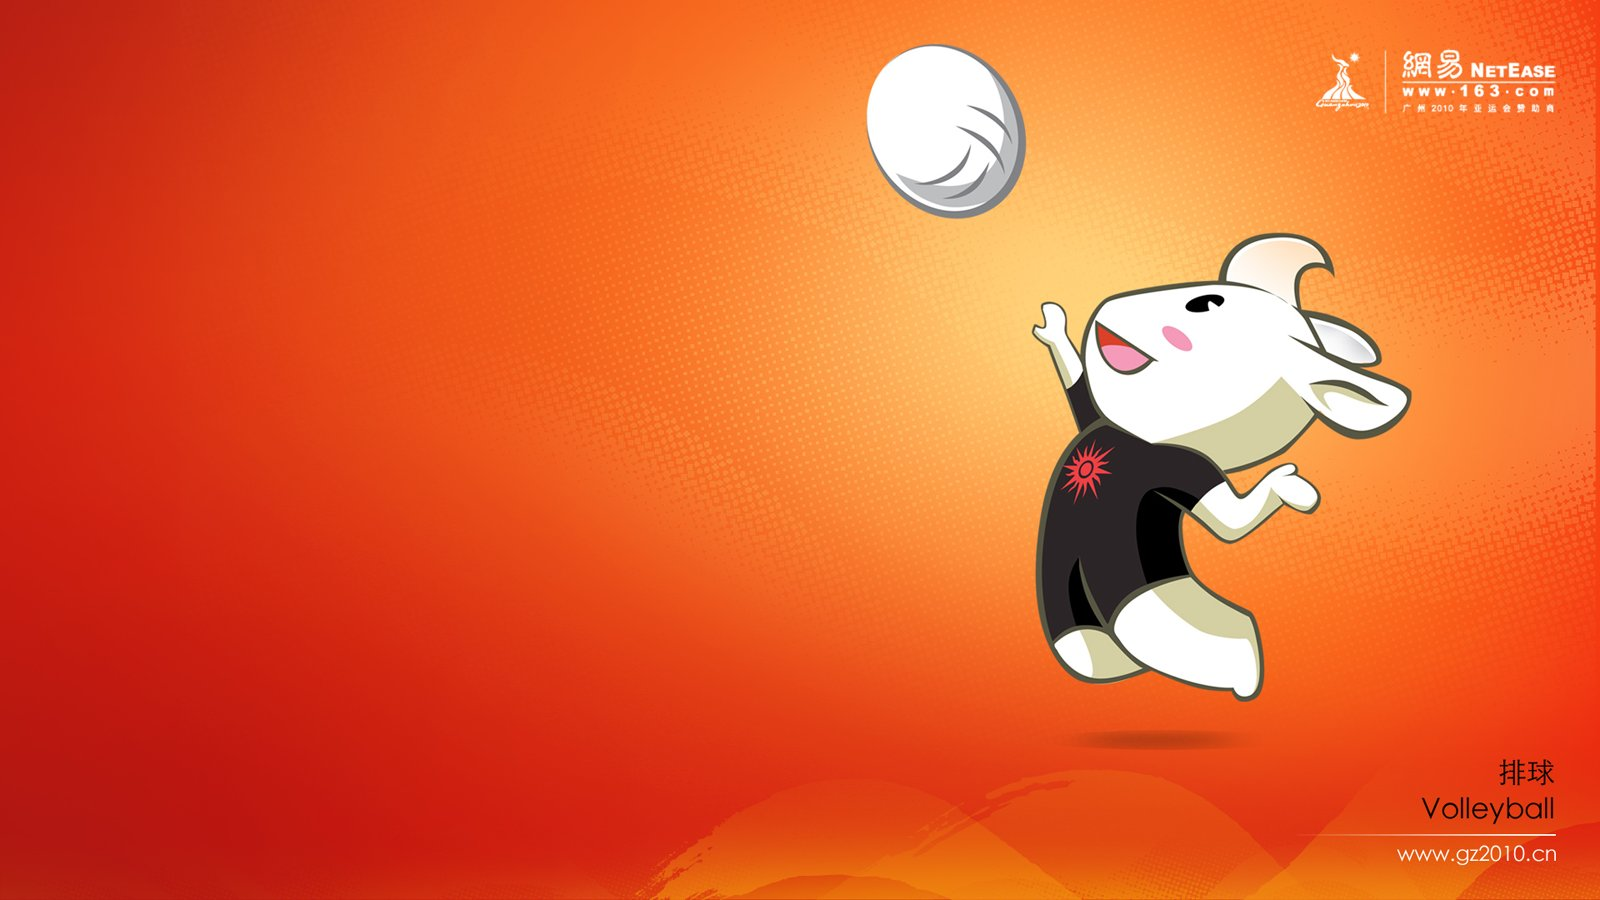 Cute Volleyball Wallpaper Pictures To Pin On Pinterest